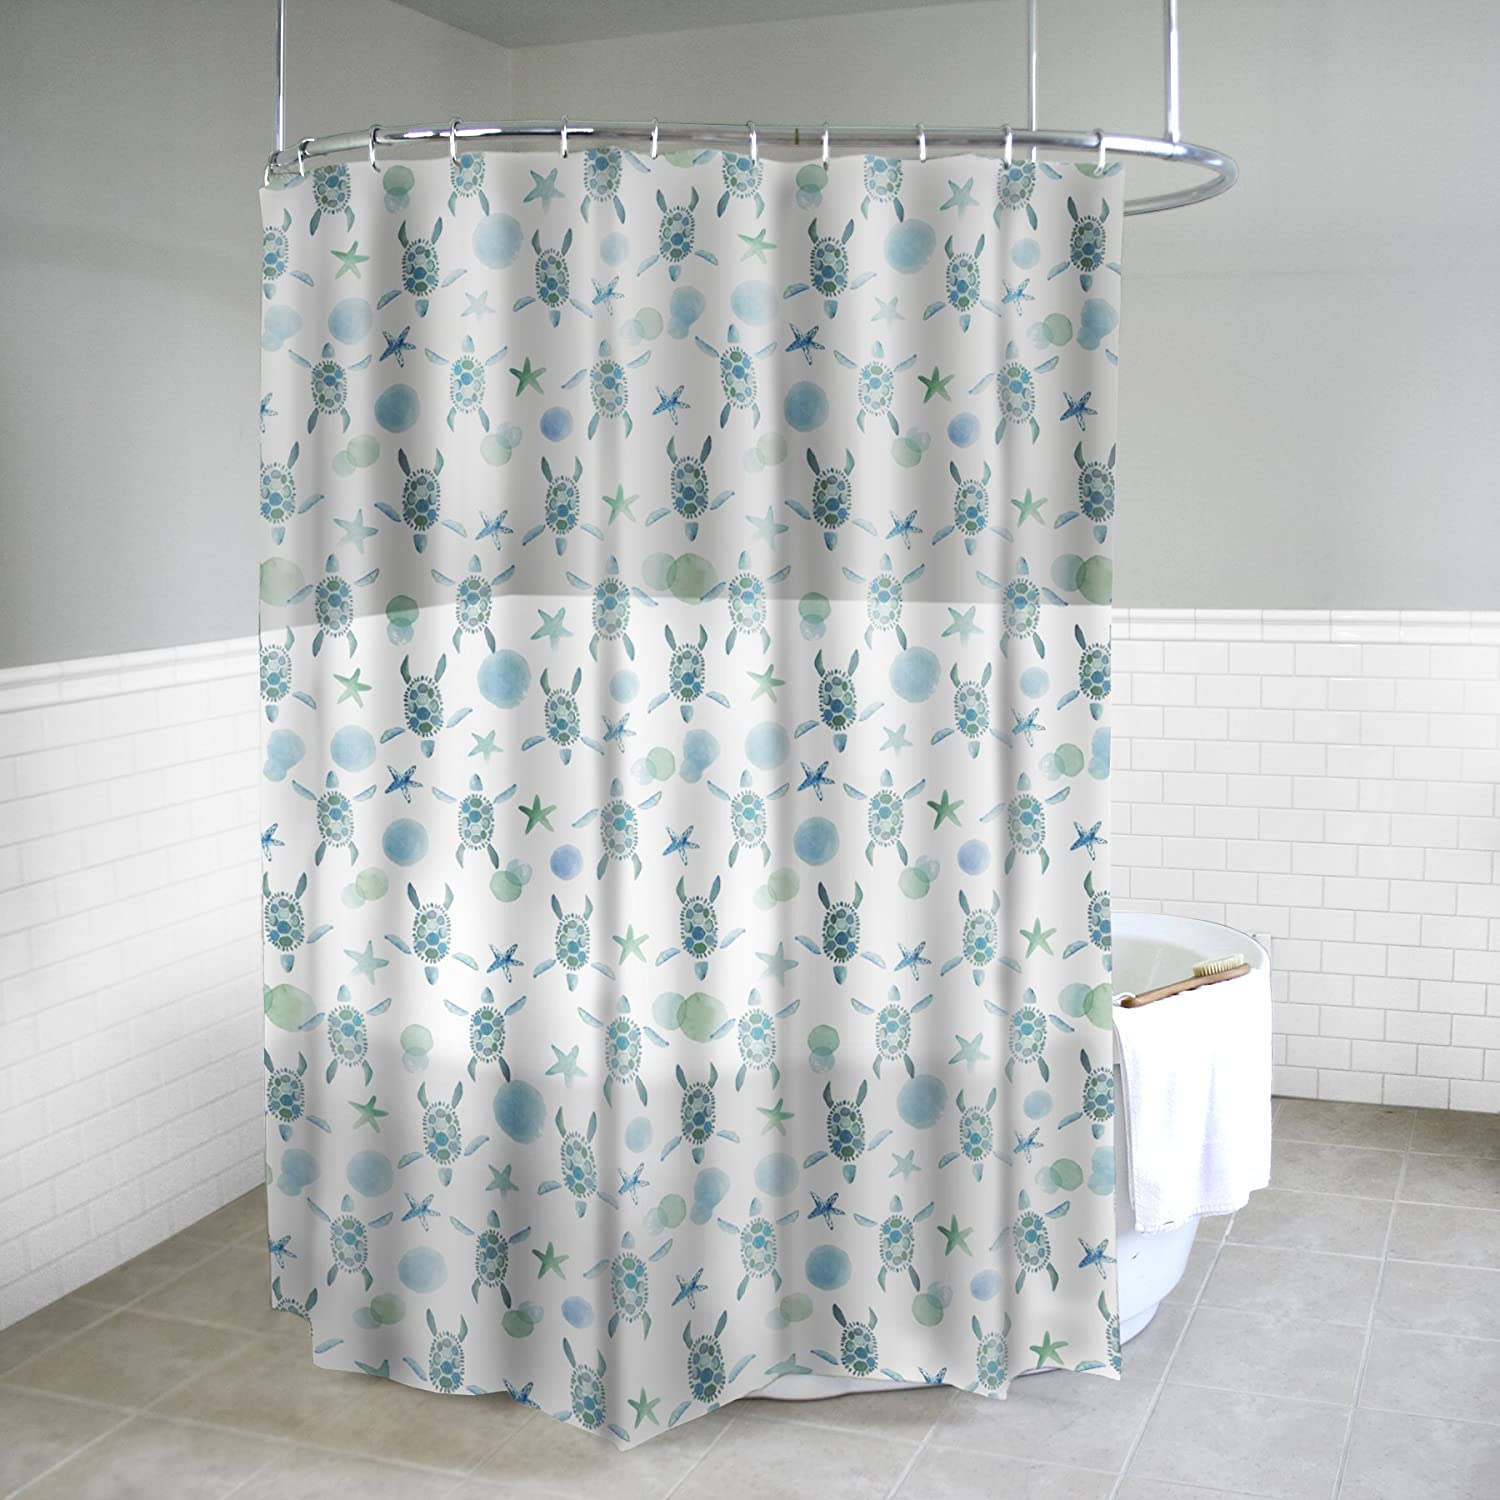 Amazon Splash Home Peva 4G Sea Turtles Shower Curtain Liner Design For Bathroom Showers And Bathtubs